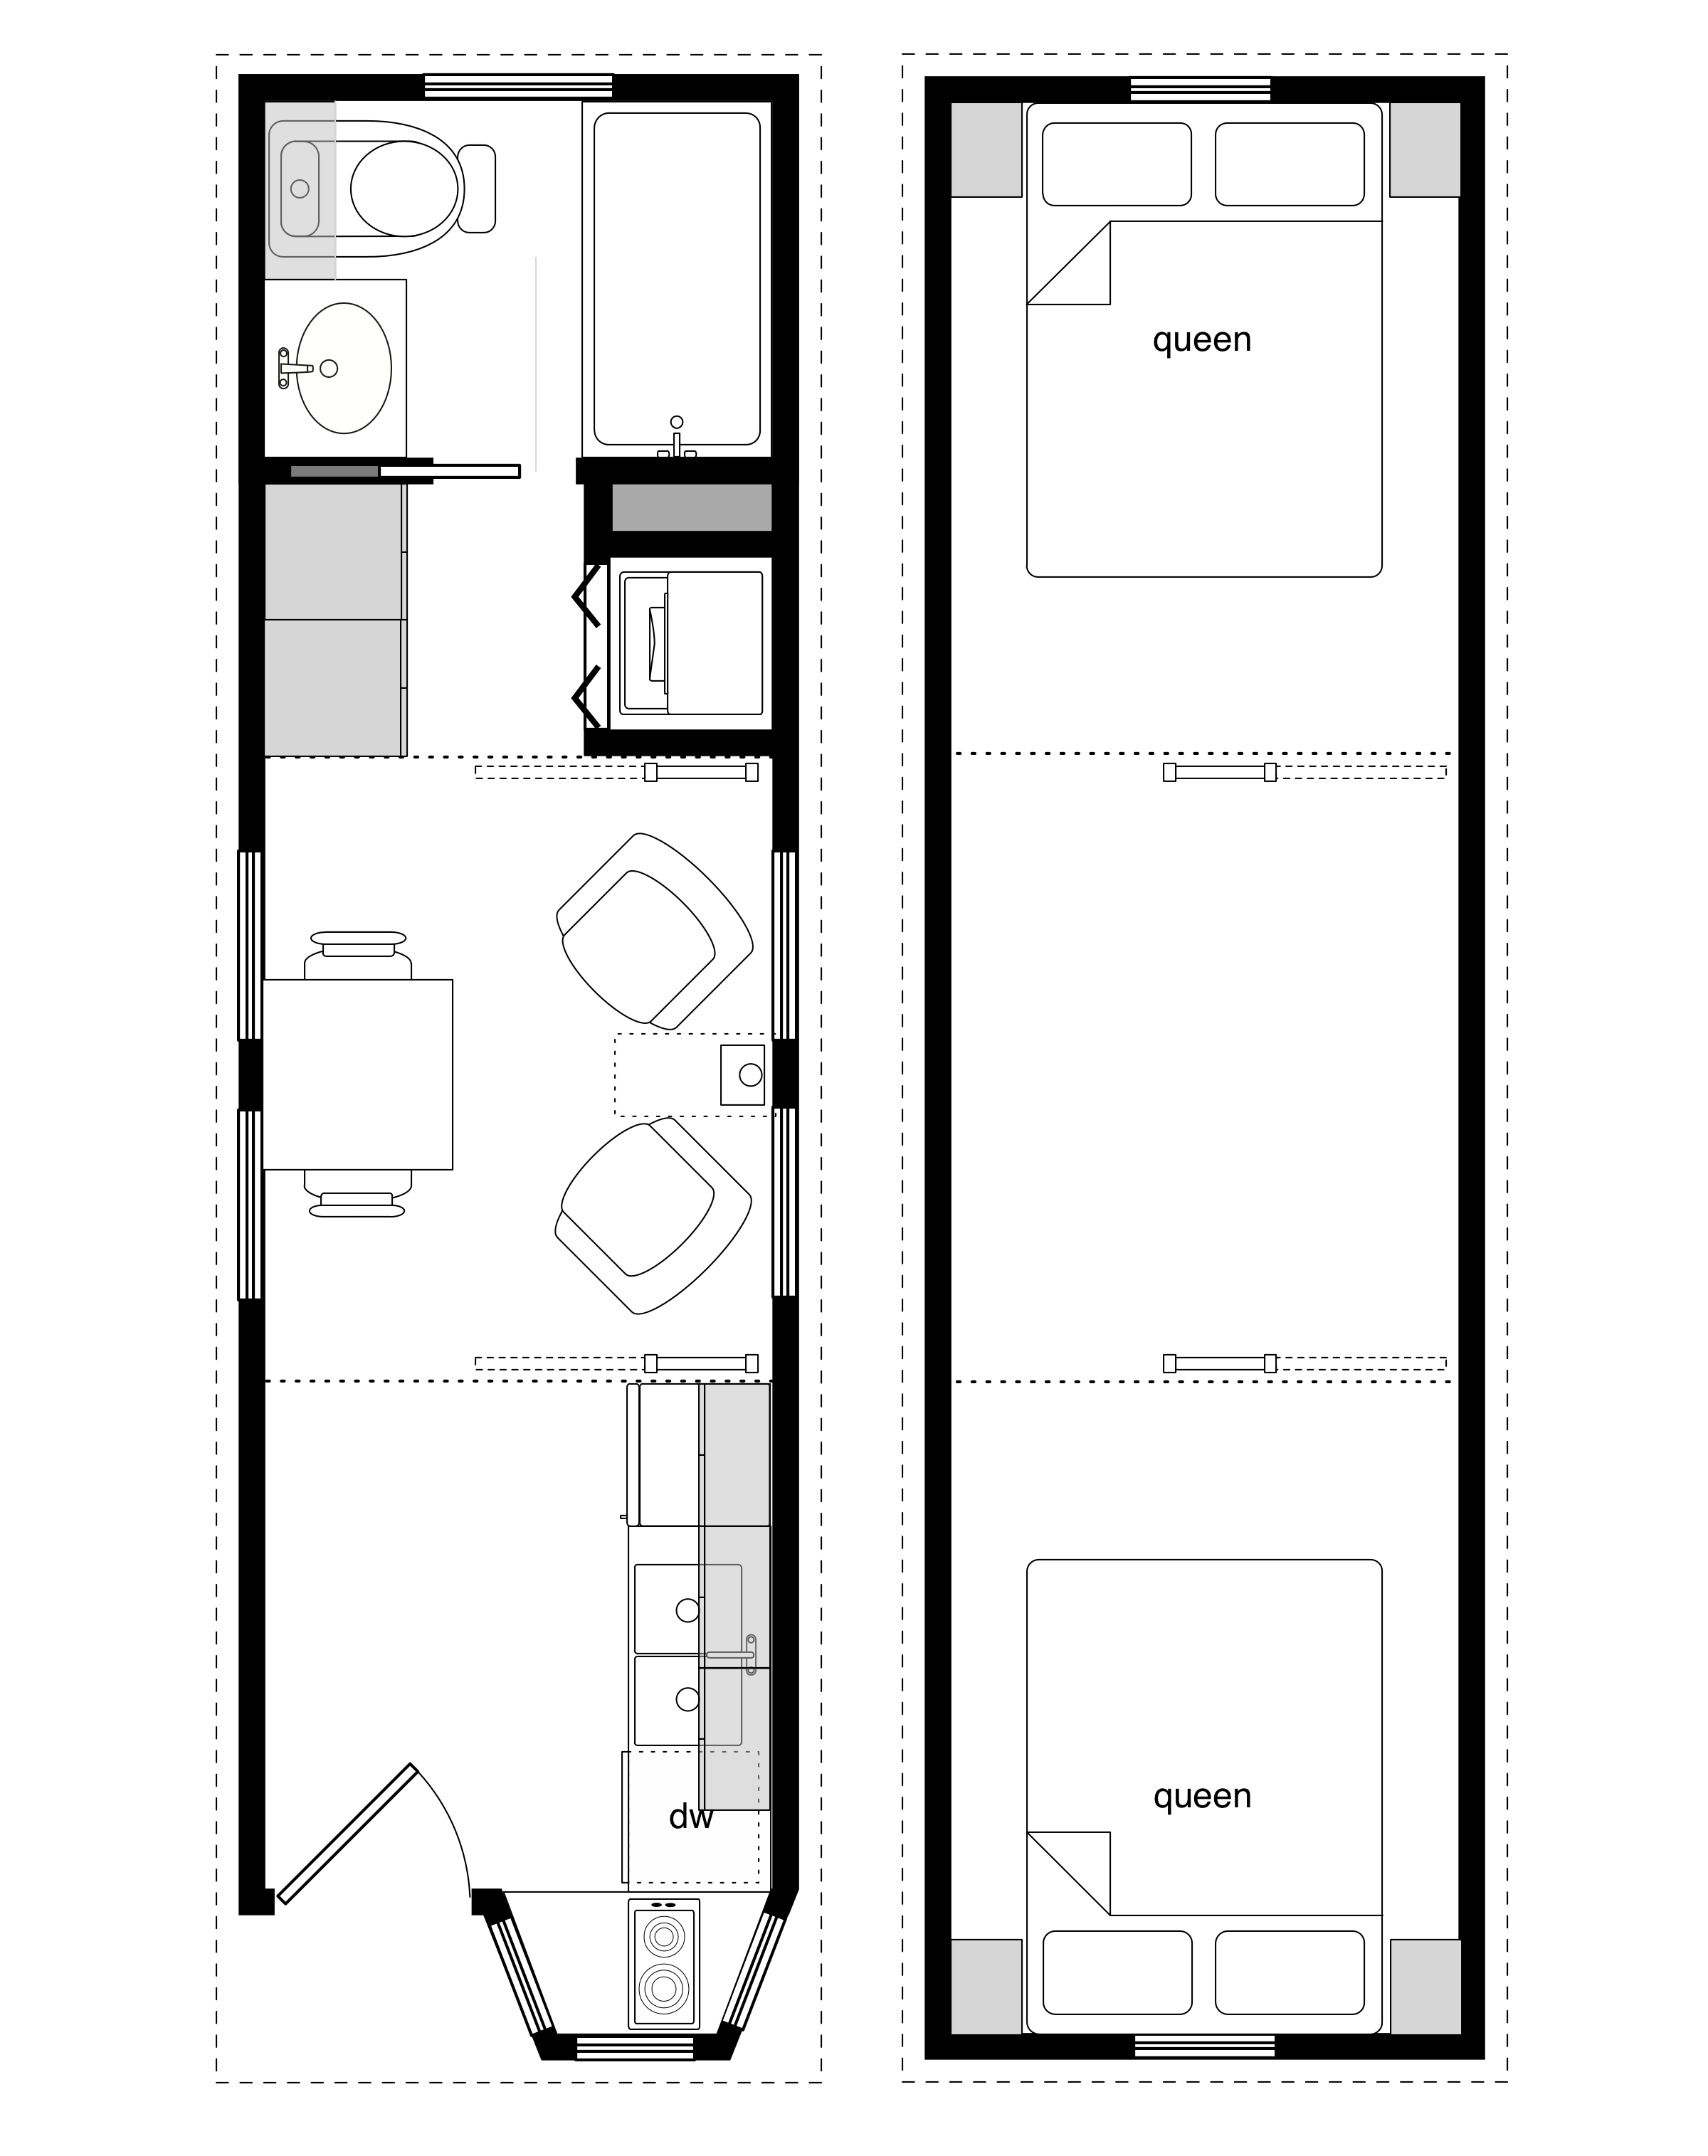 Enjoyable 63 Best Ideas About Tiny Home Floor Plans On Pinterest Inspirational Interior Design Netriciaus